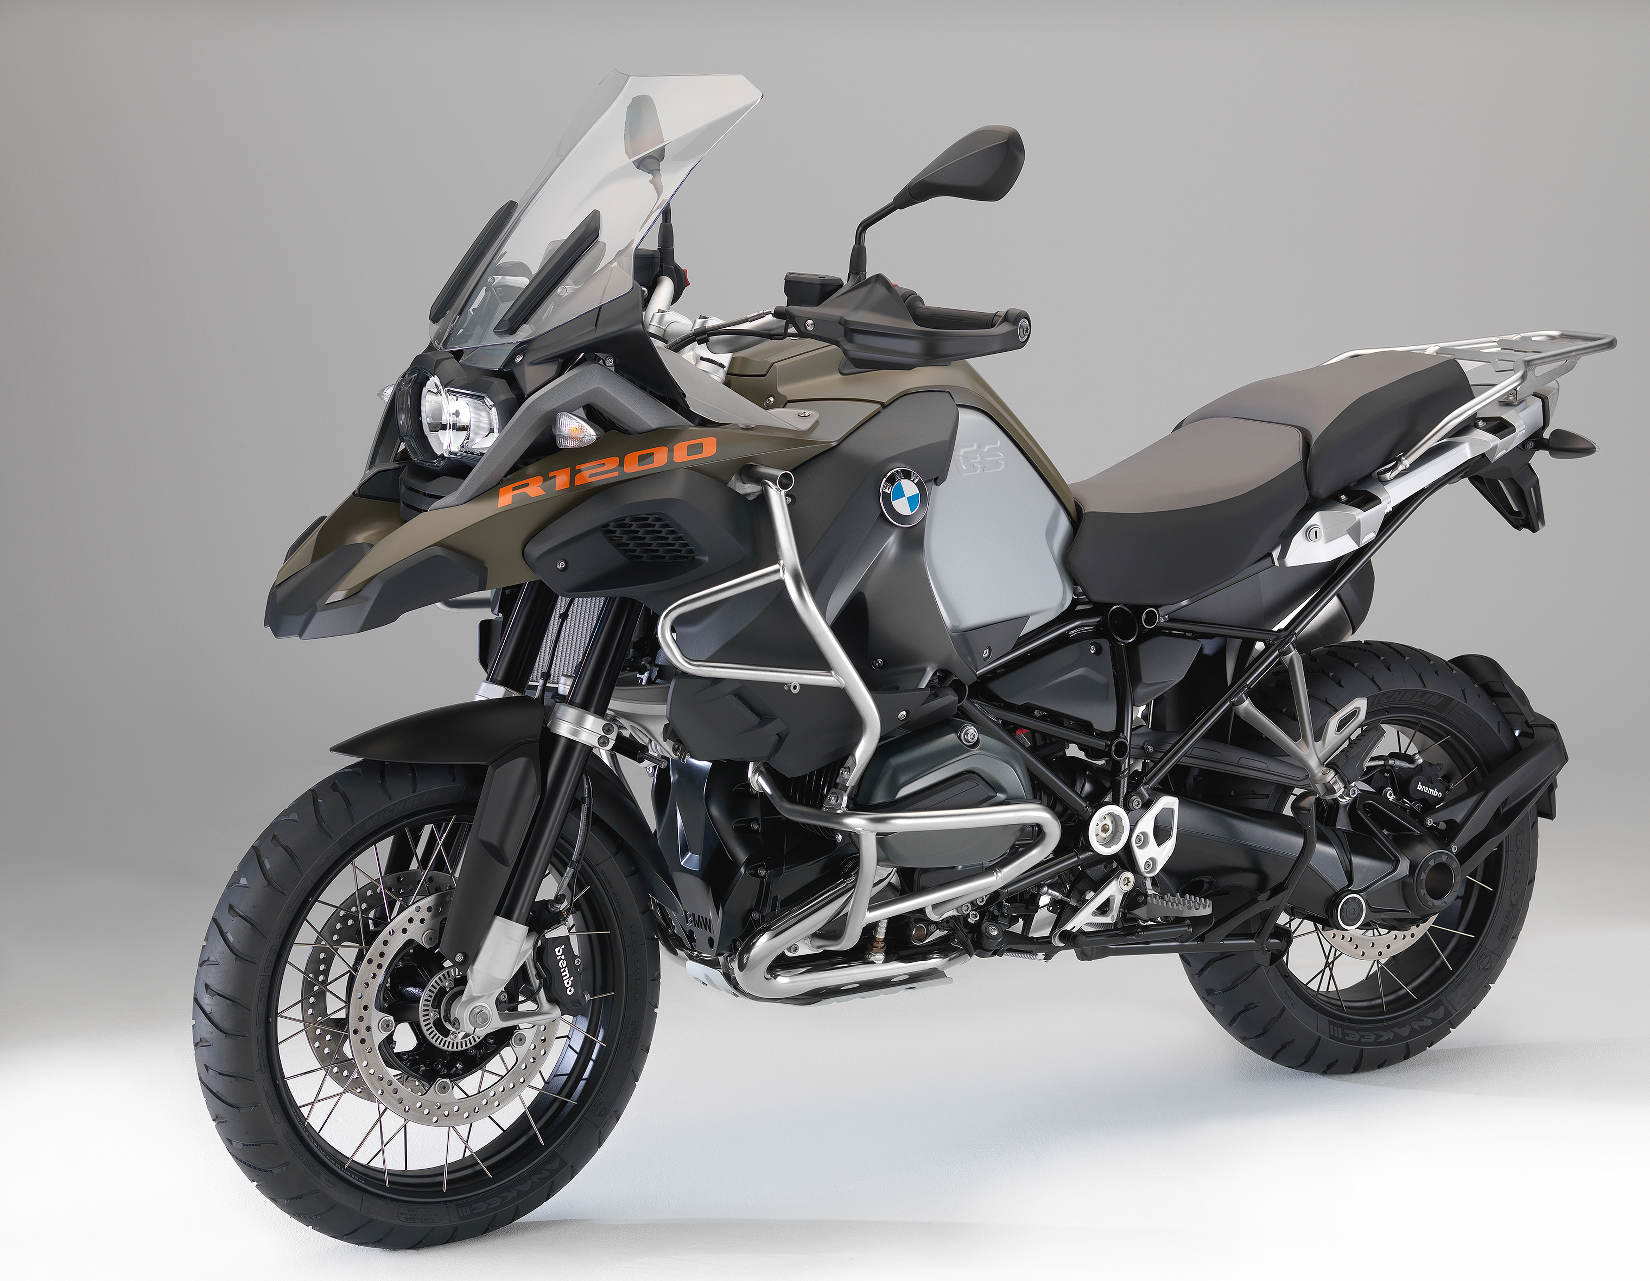 bmw announces r 1200 gs adventure the ultimate adventure tourer. Black Bedroom Furniture Sets. Home Design Ideas